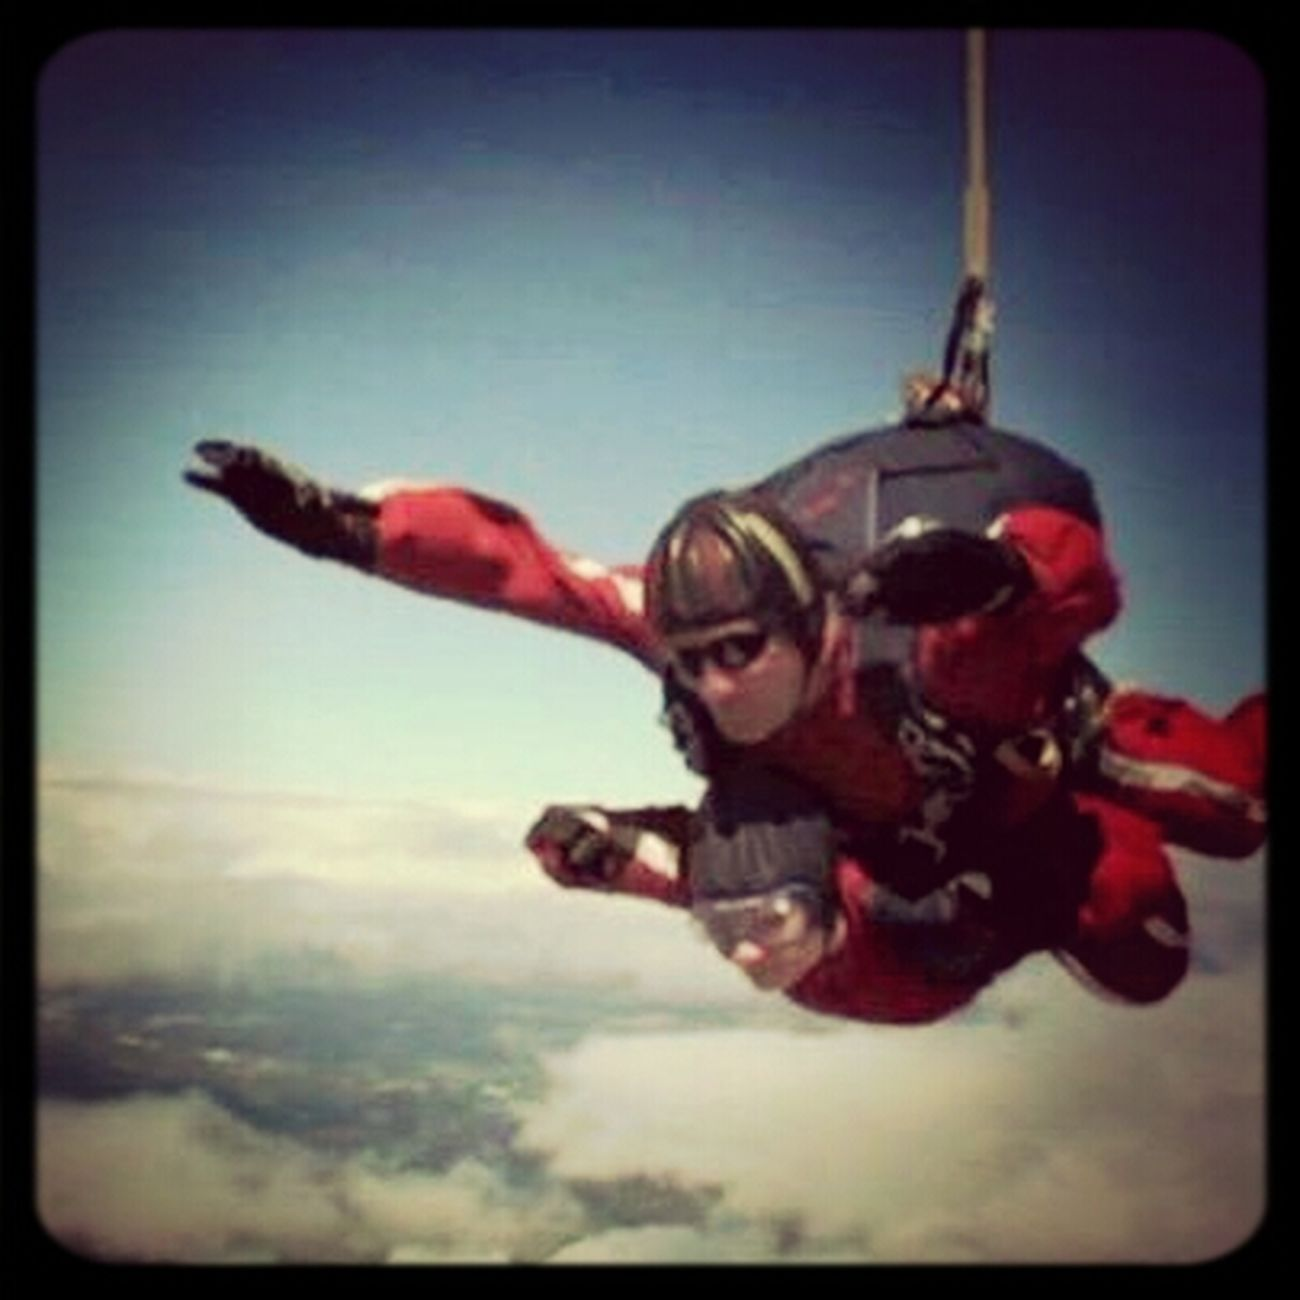 How about this for some Heartbeat Moments ?! 2012 Charity Skydive.